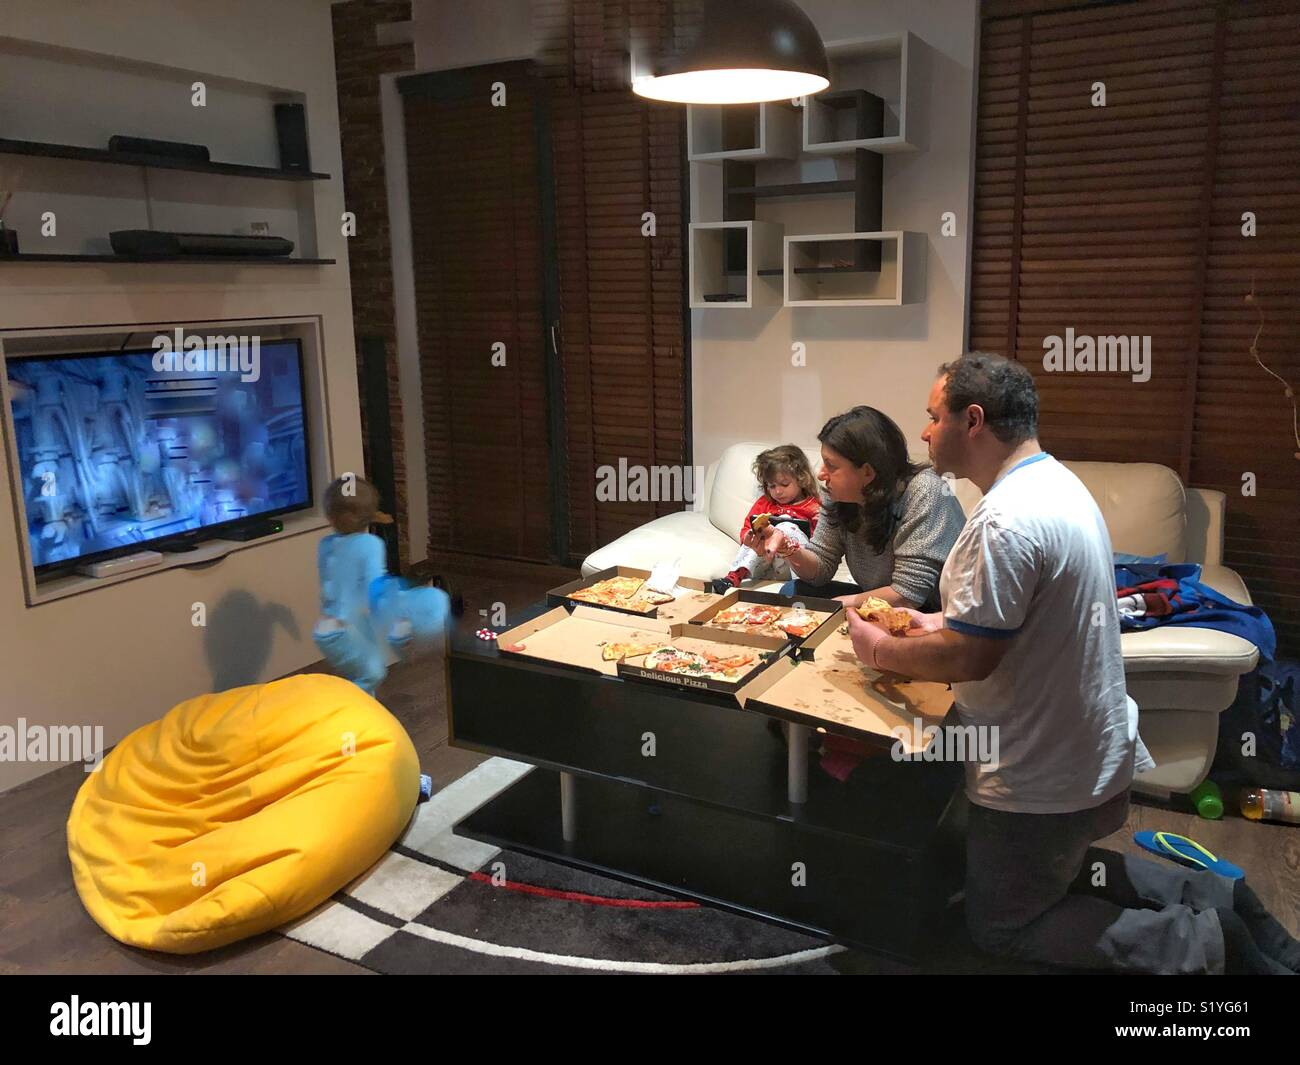 Family eating pizza at home - Stock Image